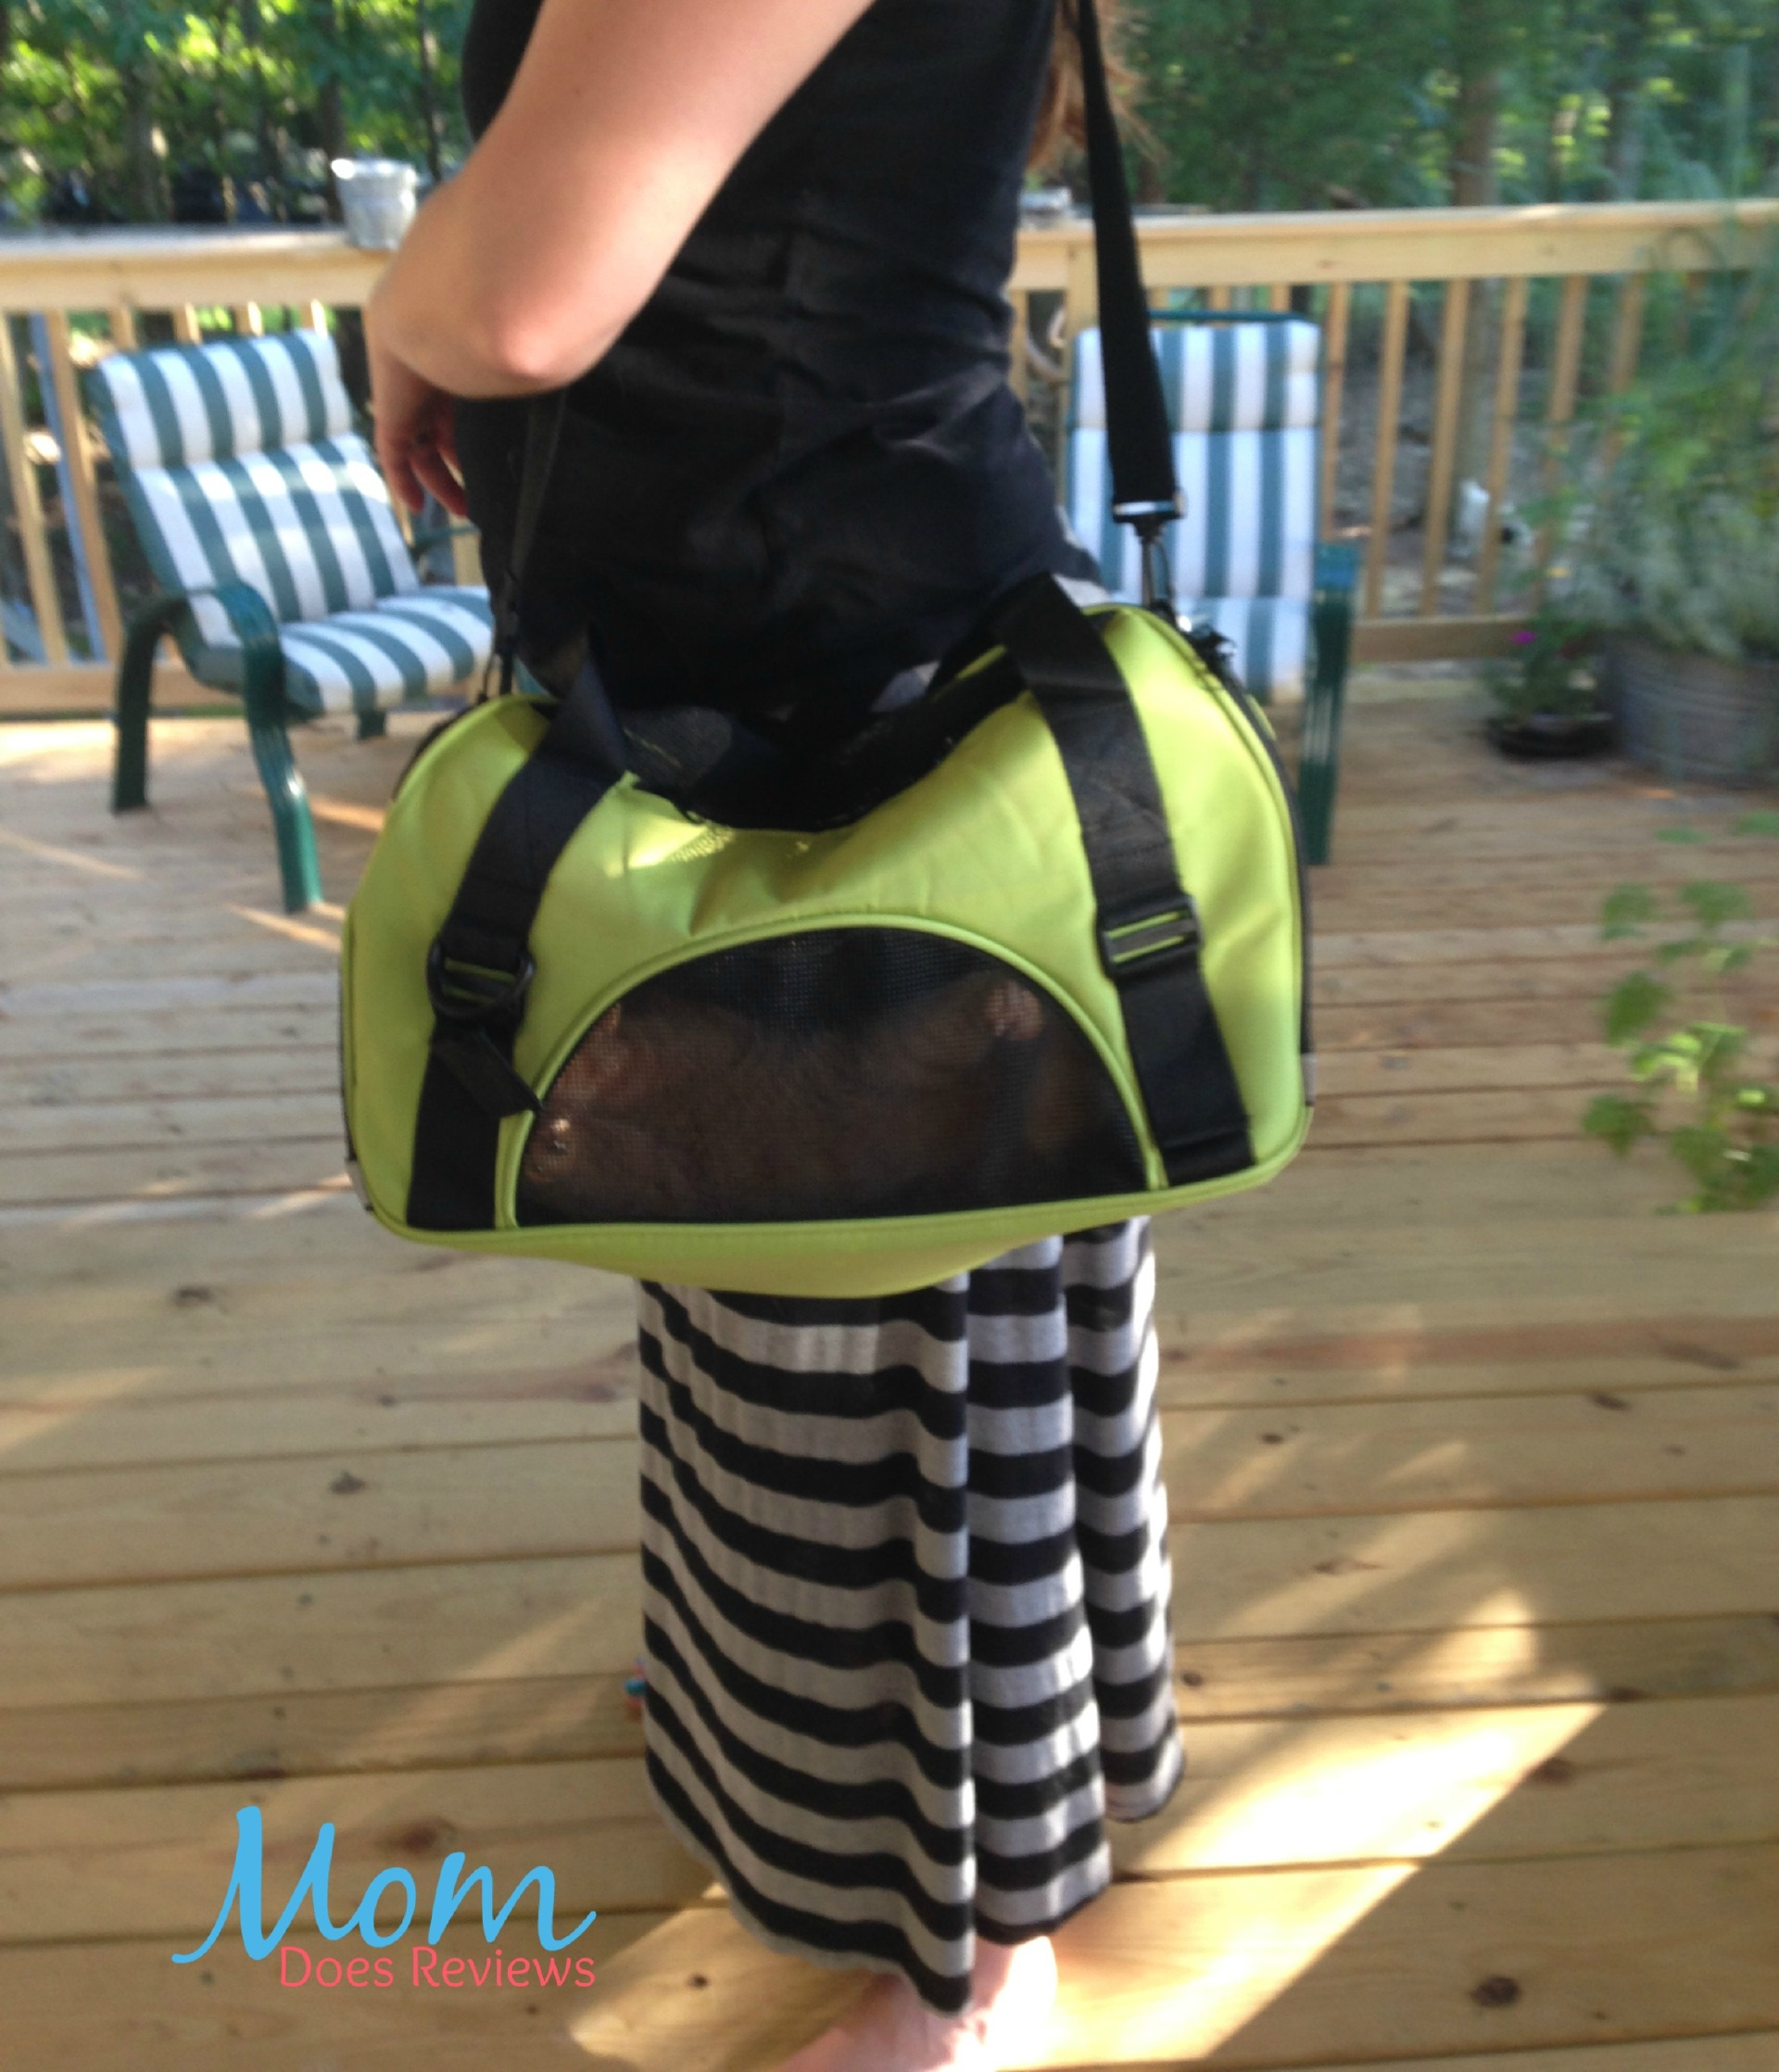 Marsboy Rende Pet Travel un gioco da ragazzi! #review # Chri